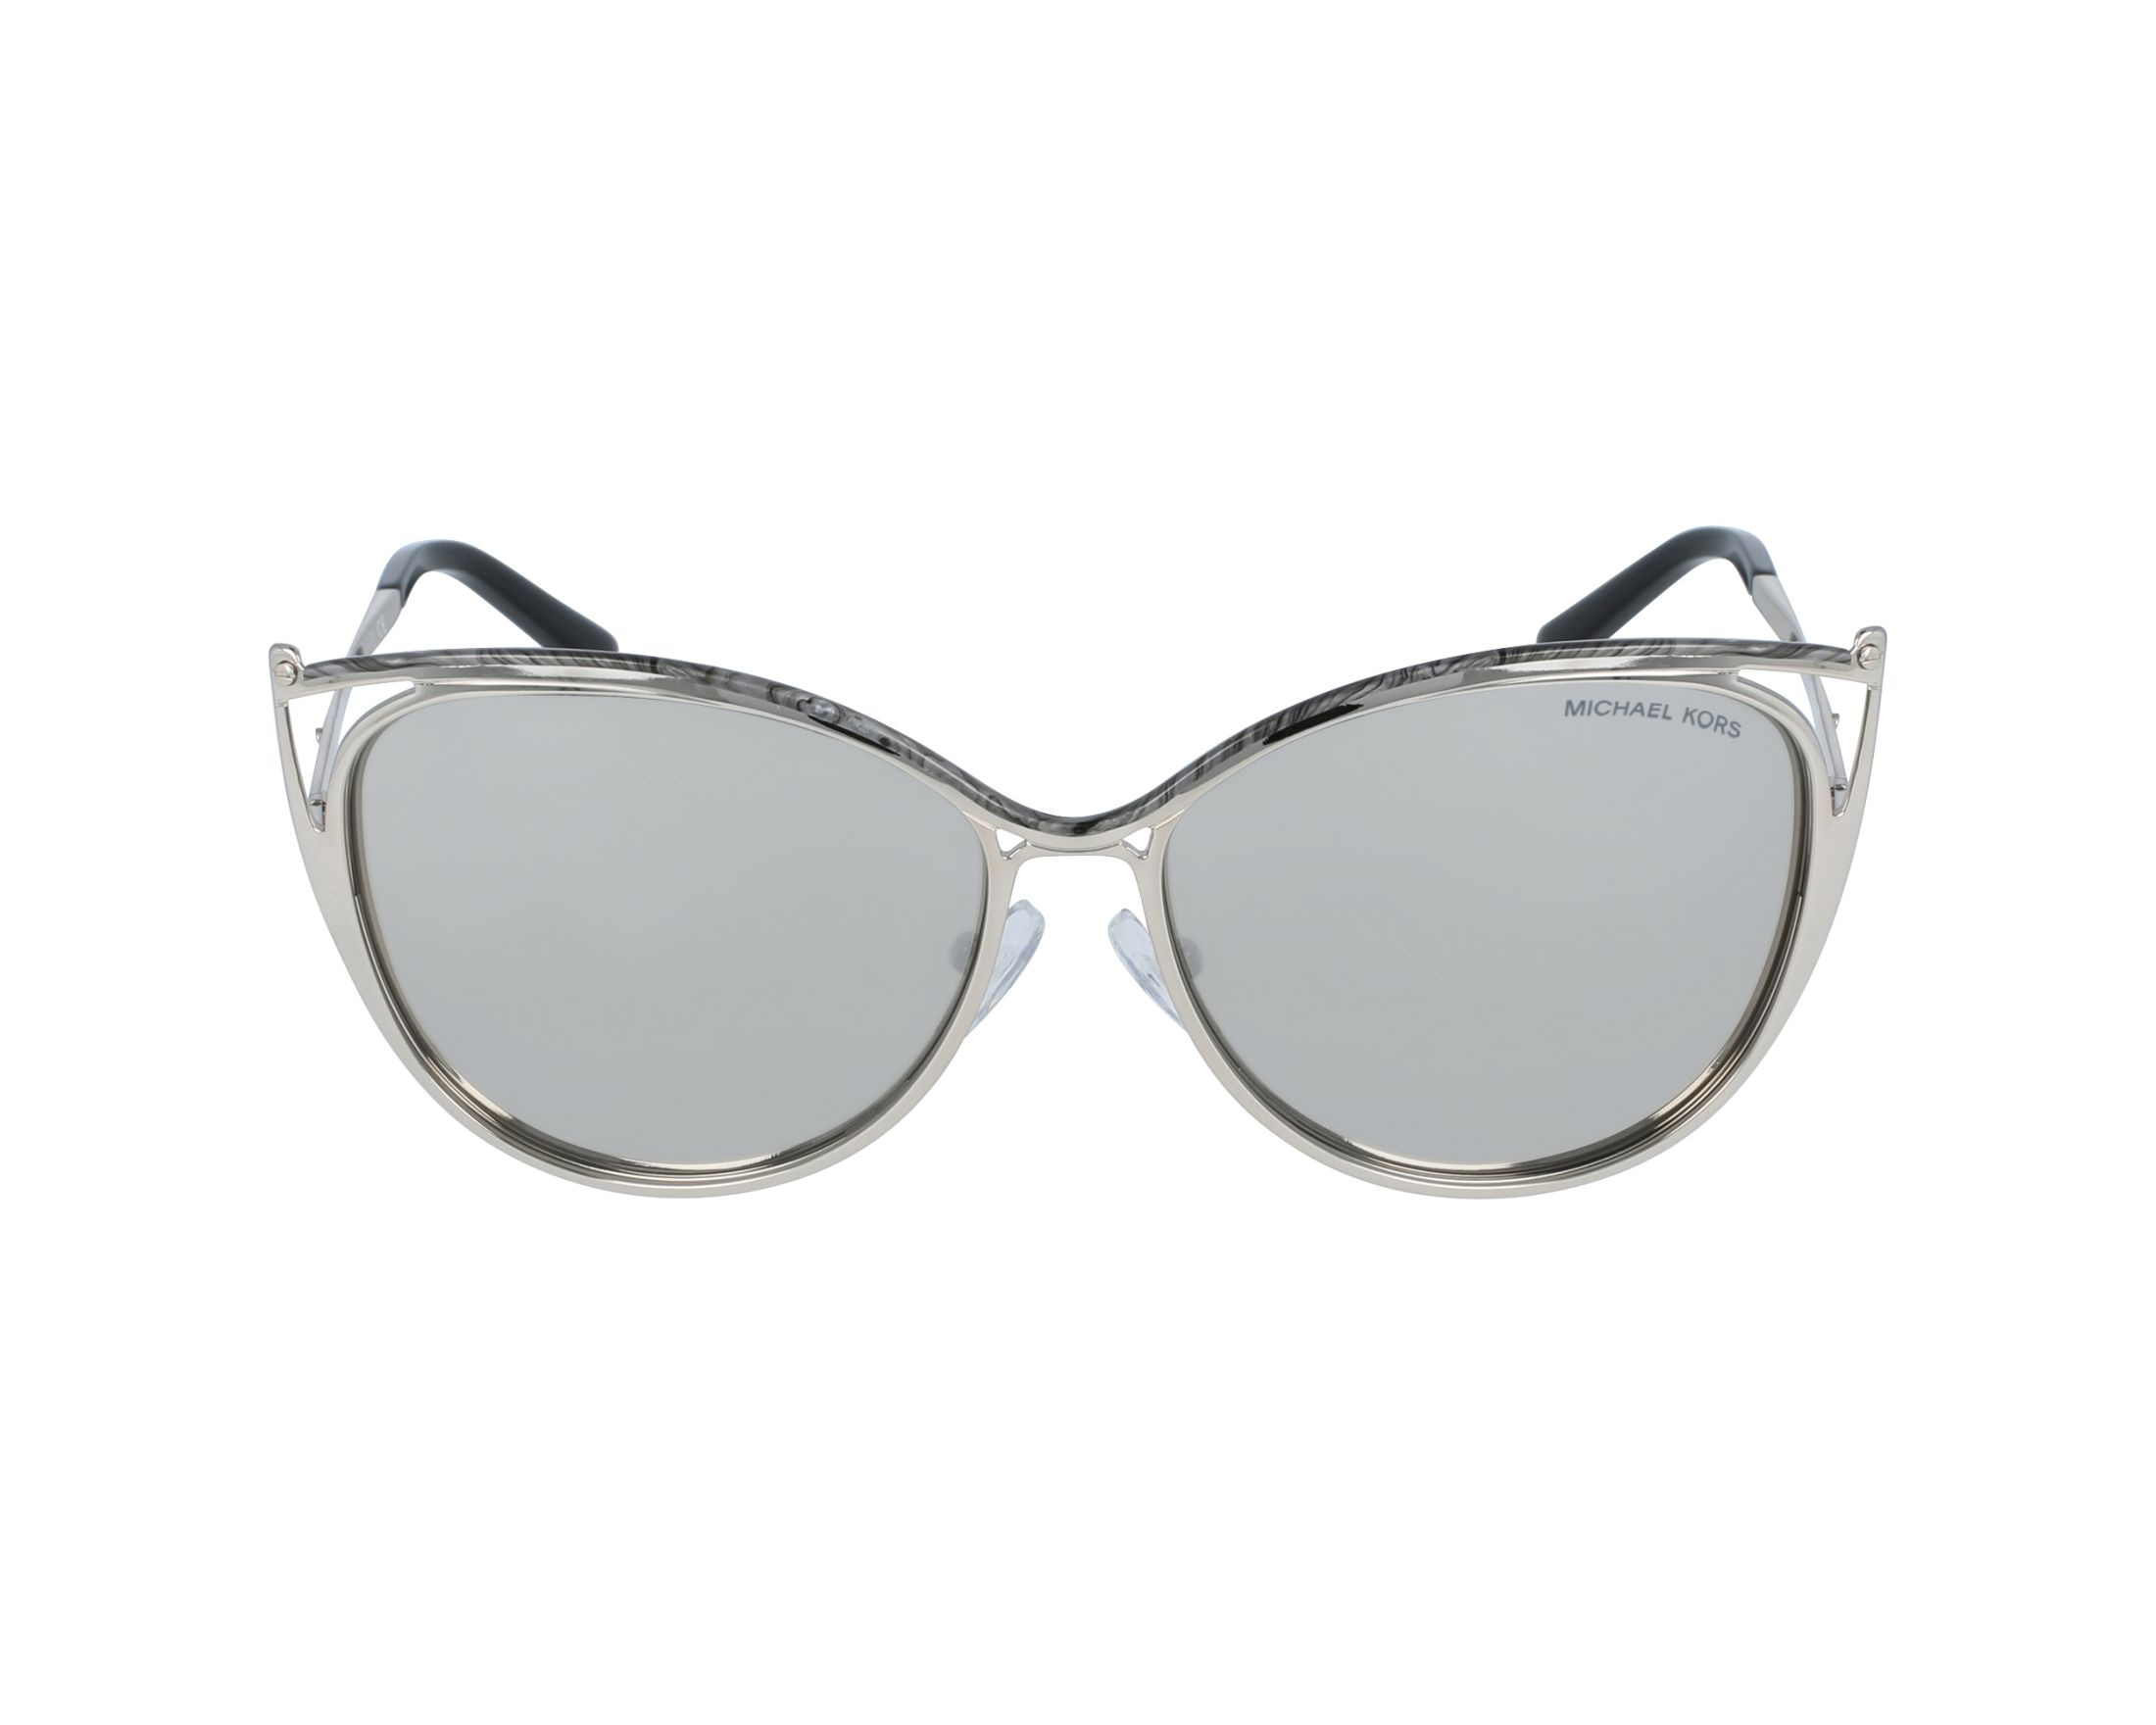 Sunglasses Michael Kors MK-1020 11666G 56-14 Silver profile view 357ddadeab82